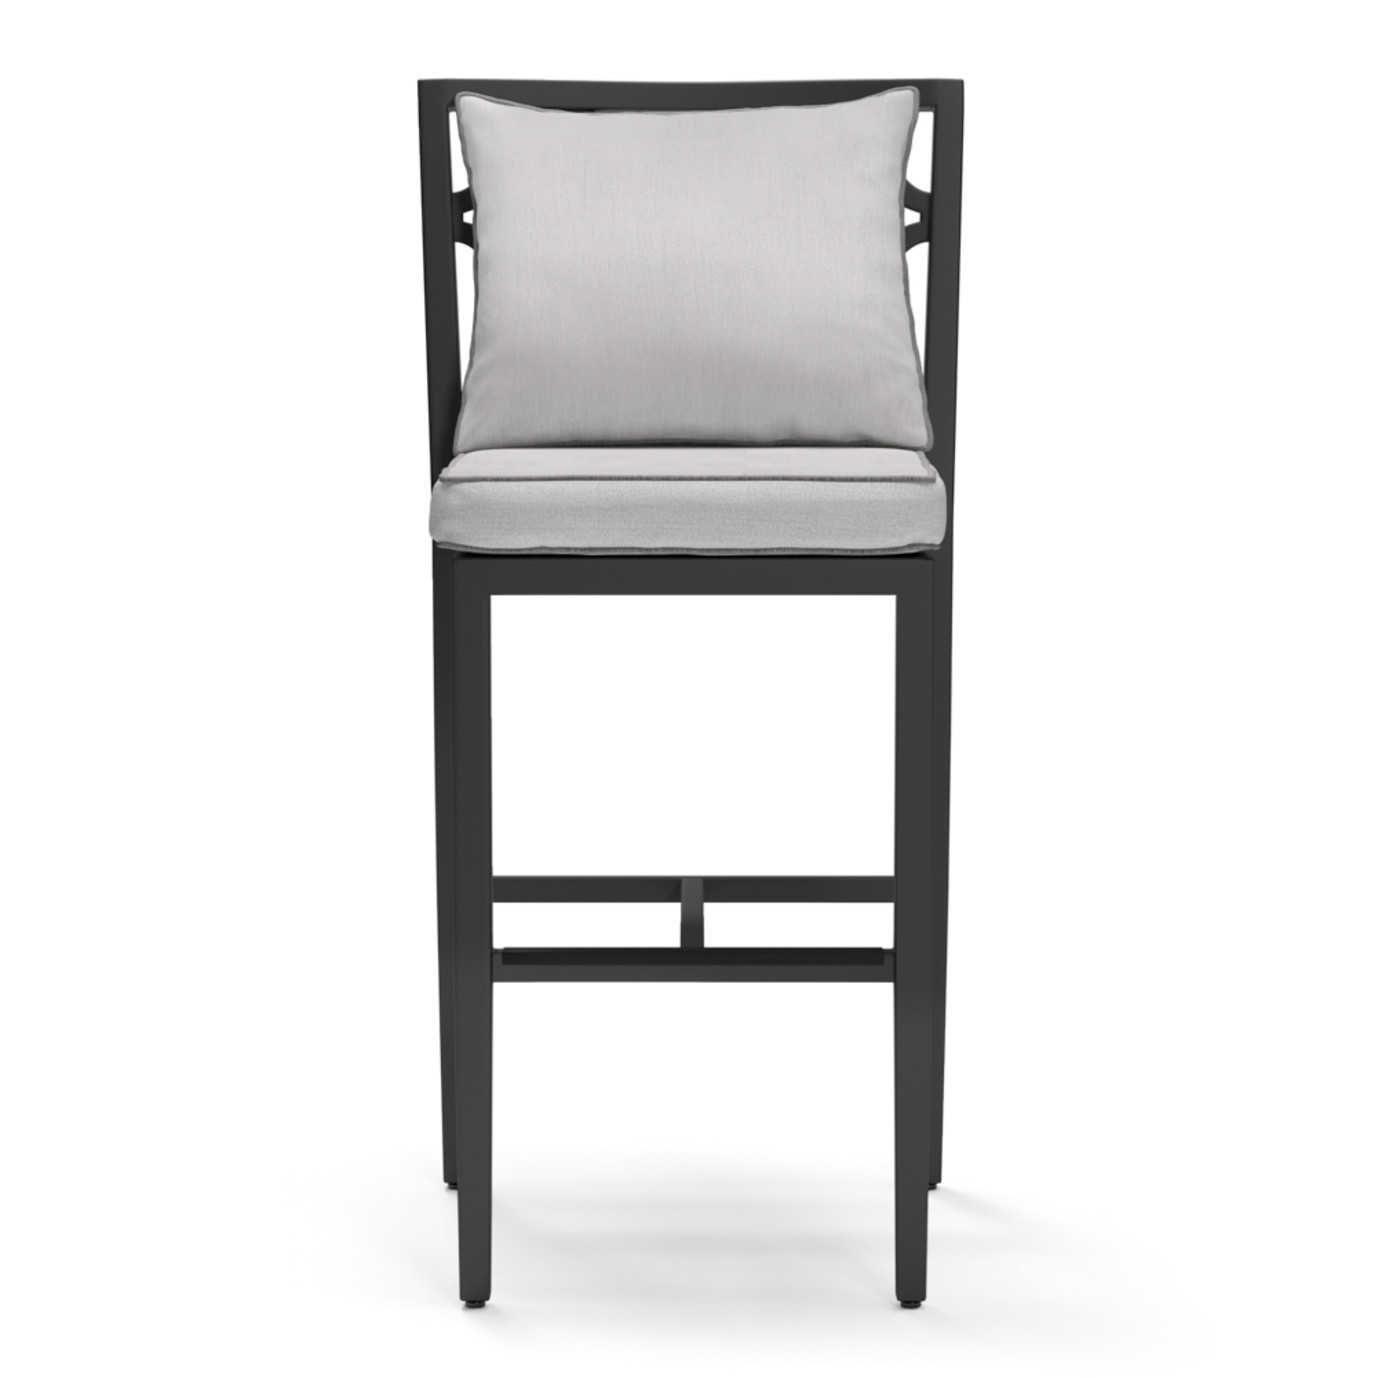 Venetia™ Set of 6 Barstools